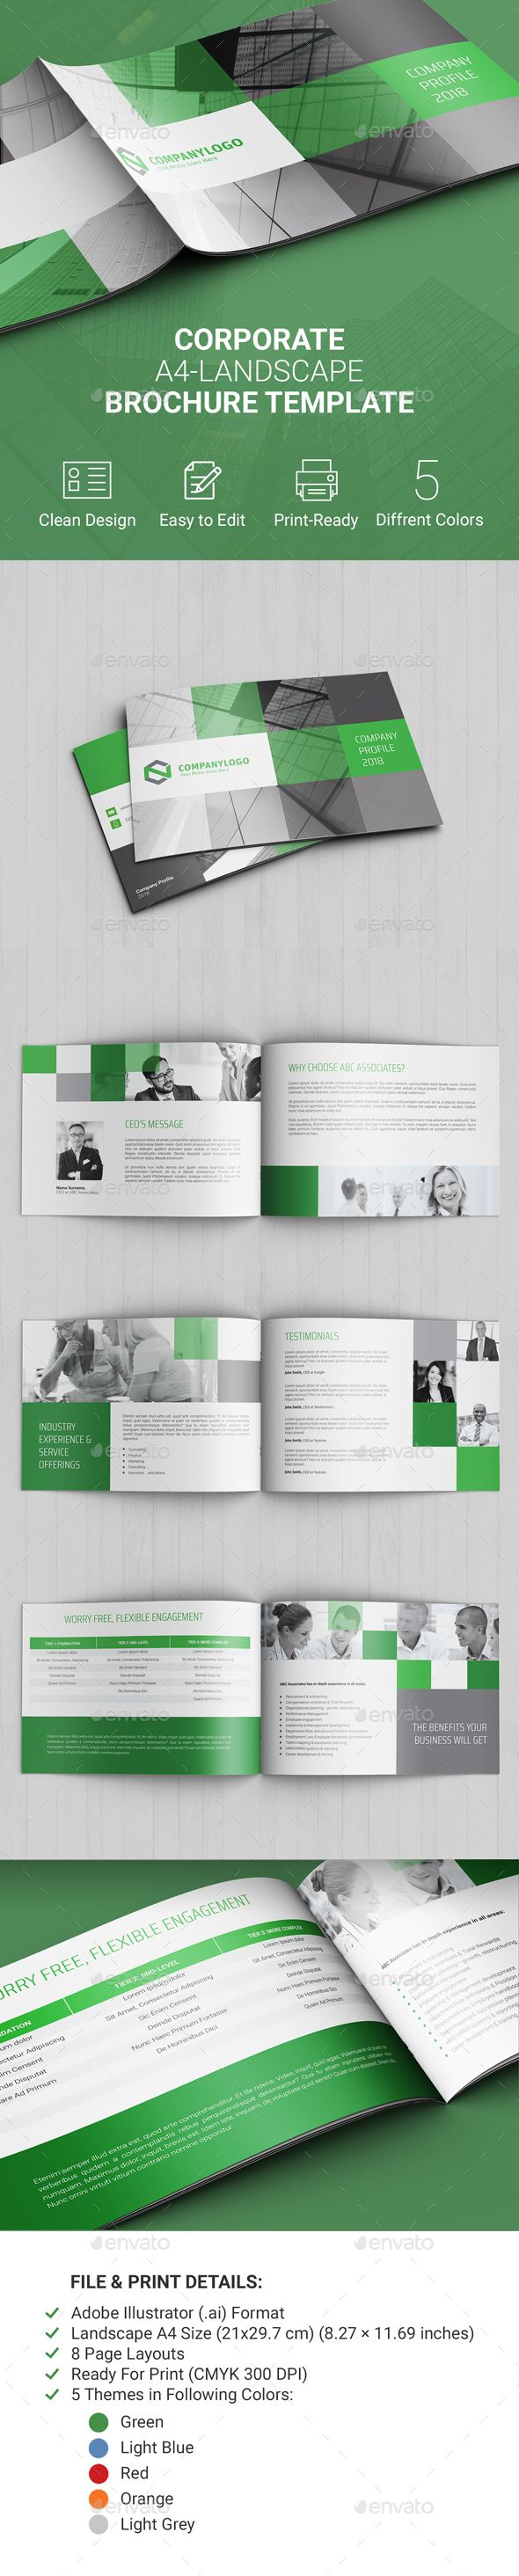 Corporate Landscape Brochure  Corporate Brochure Brochures And